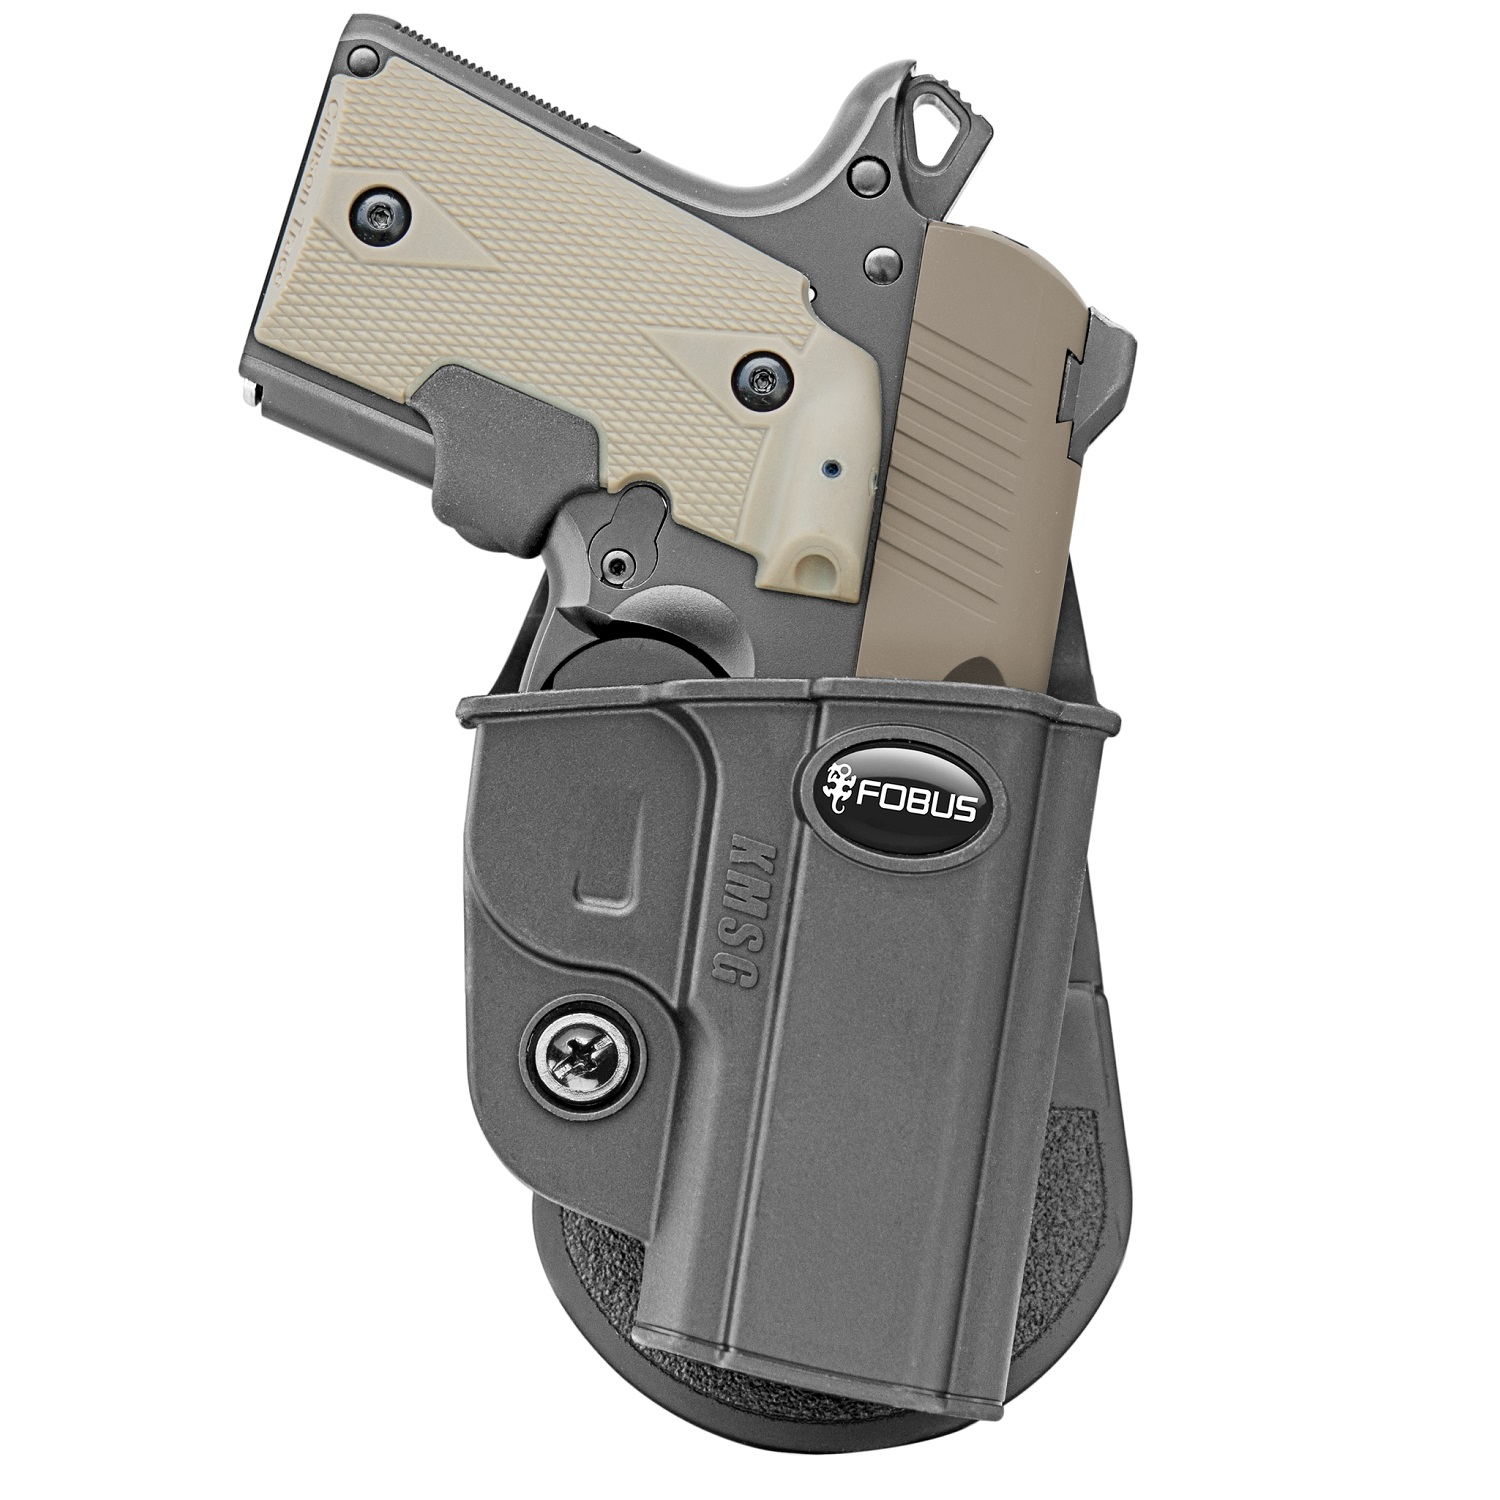 Fobus Evolution Paddle Holster-Sig Springfield Kimber Micro by Fobus Holsters